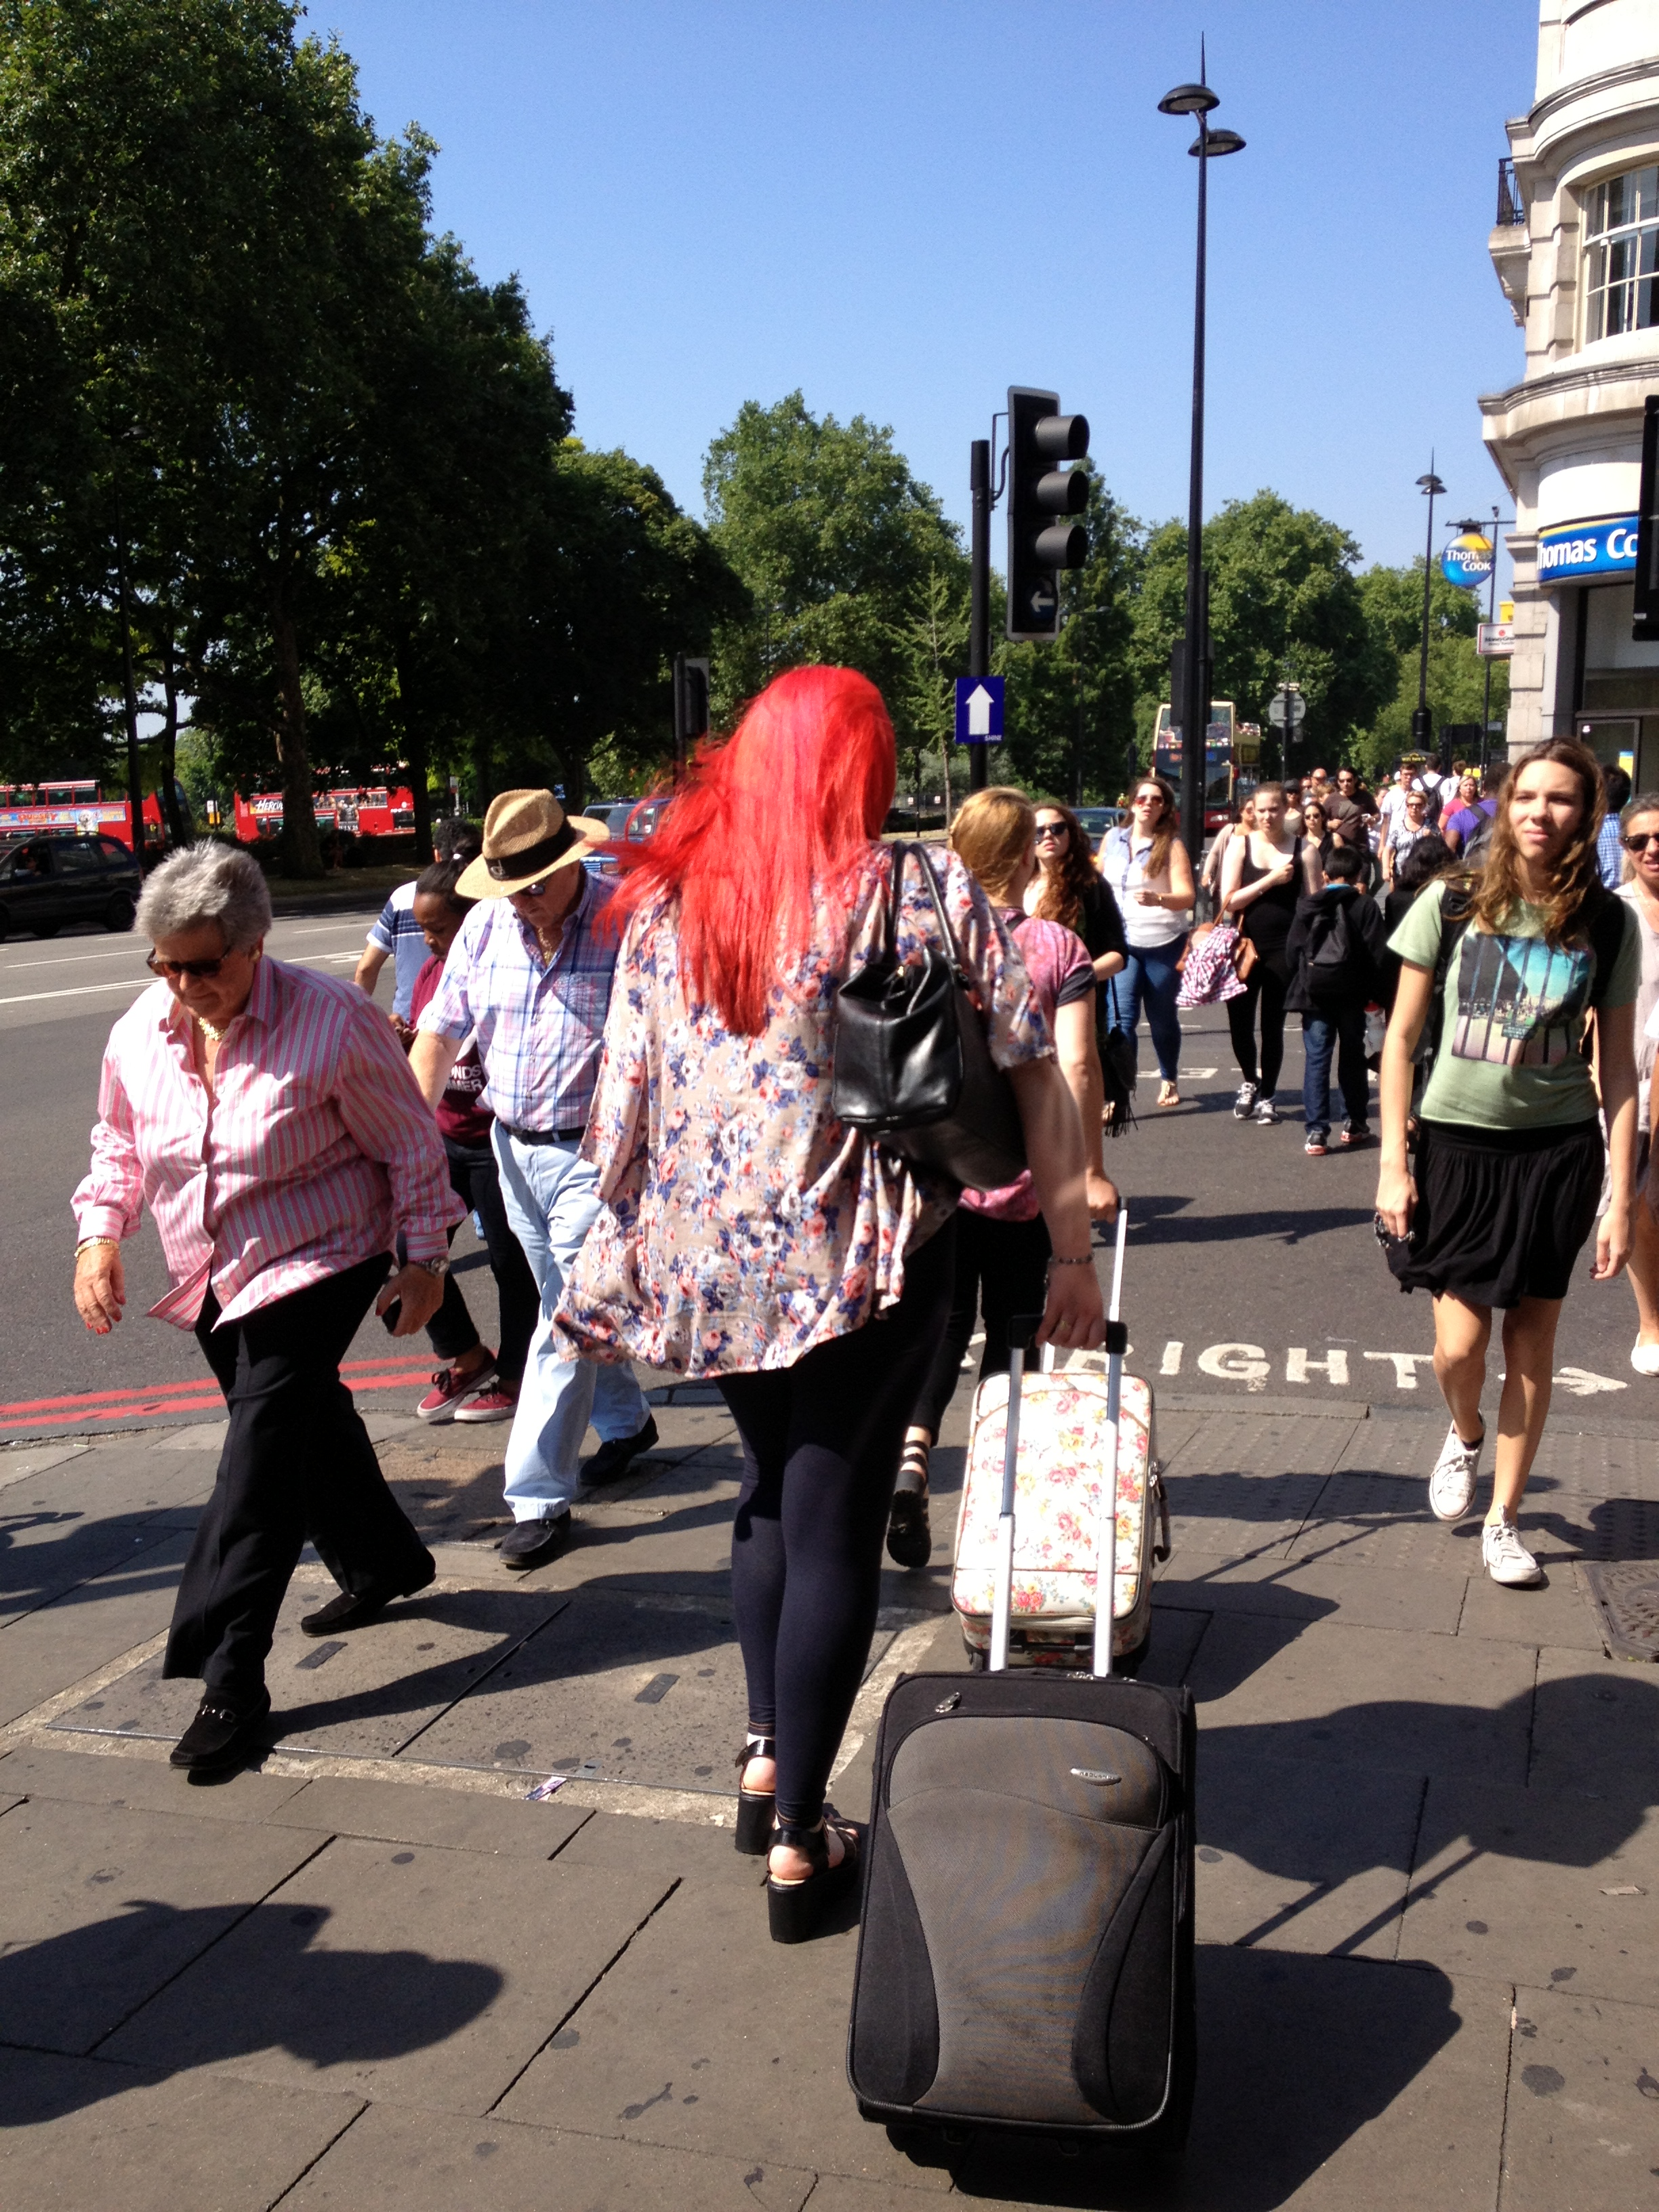 LONDON IN RED צבע אדום בלונדון by Shuli Sapir-Nevo Photo and Motto - Ourboox.com